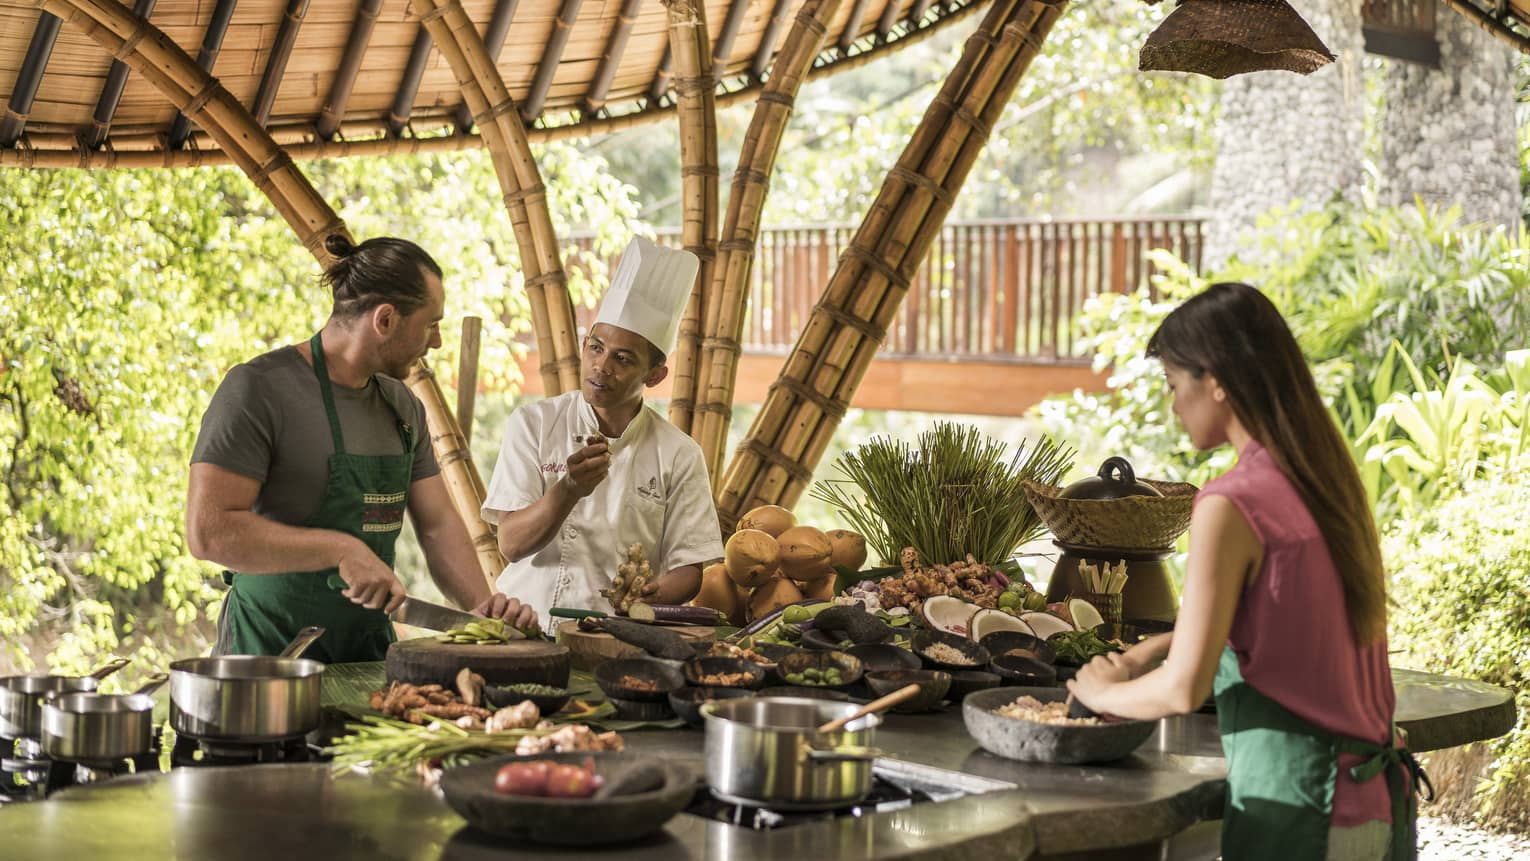 A four season chef instruction a man and woman how to cook in an outdoor kitchen